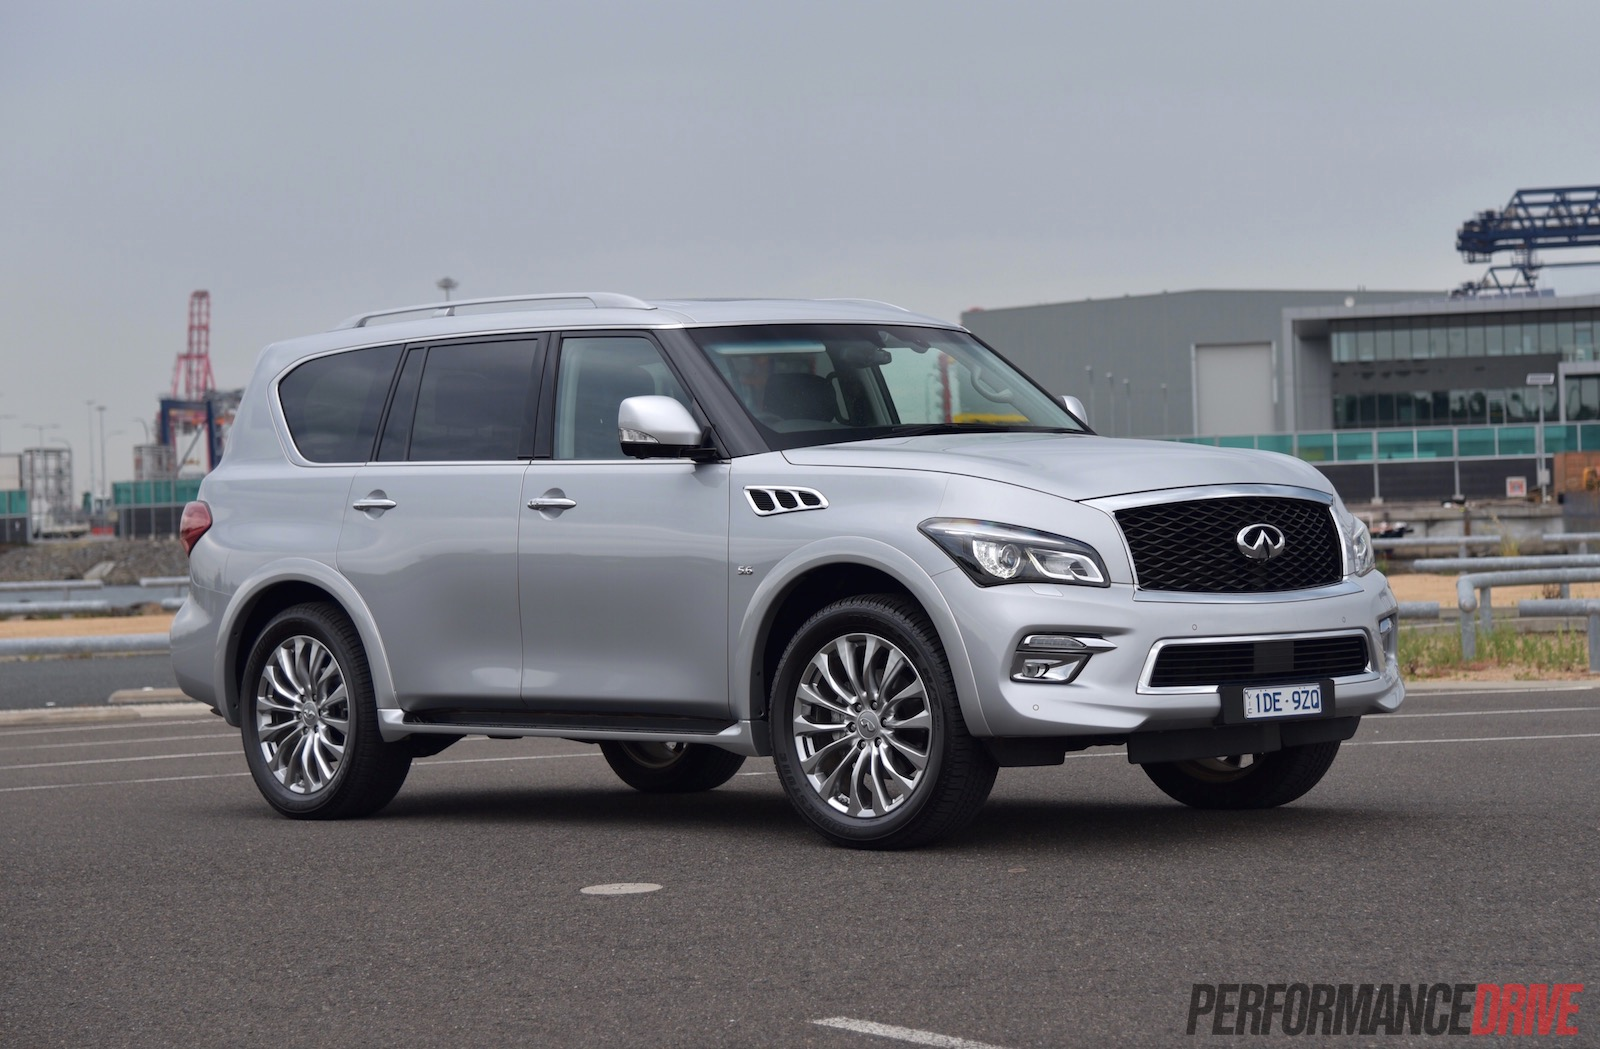 2012 Infiniti Qx80 For Sale >> 2015 Infiniti Qx 80 For Sale.html | Autos Post